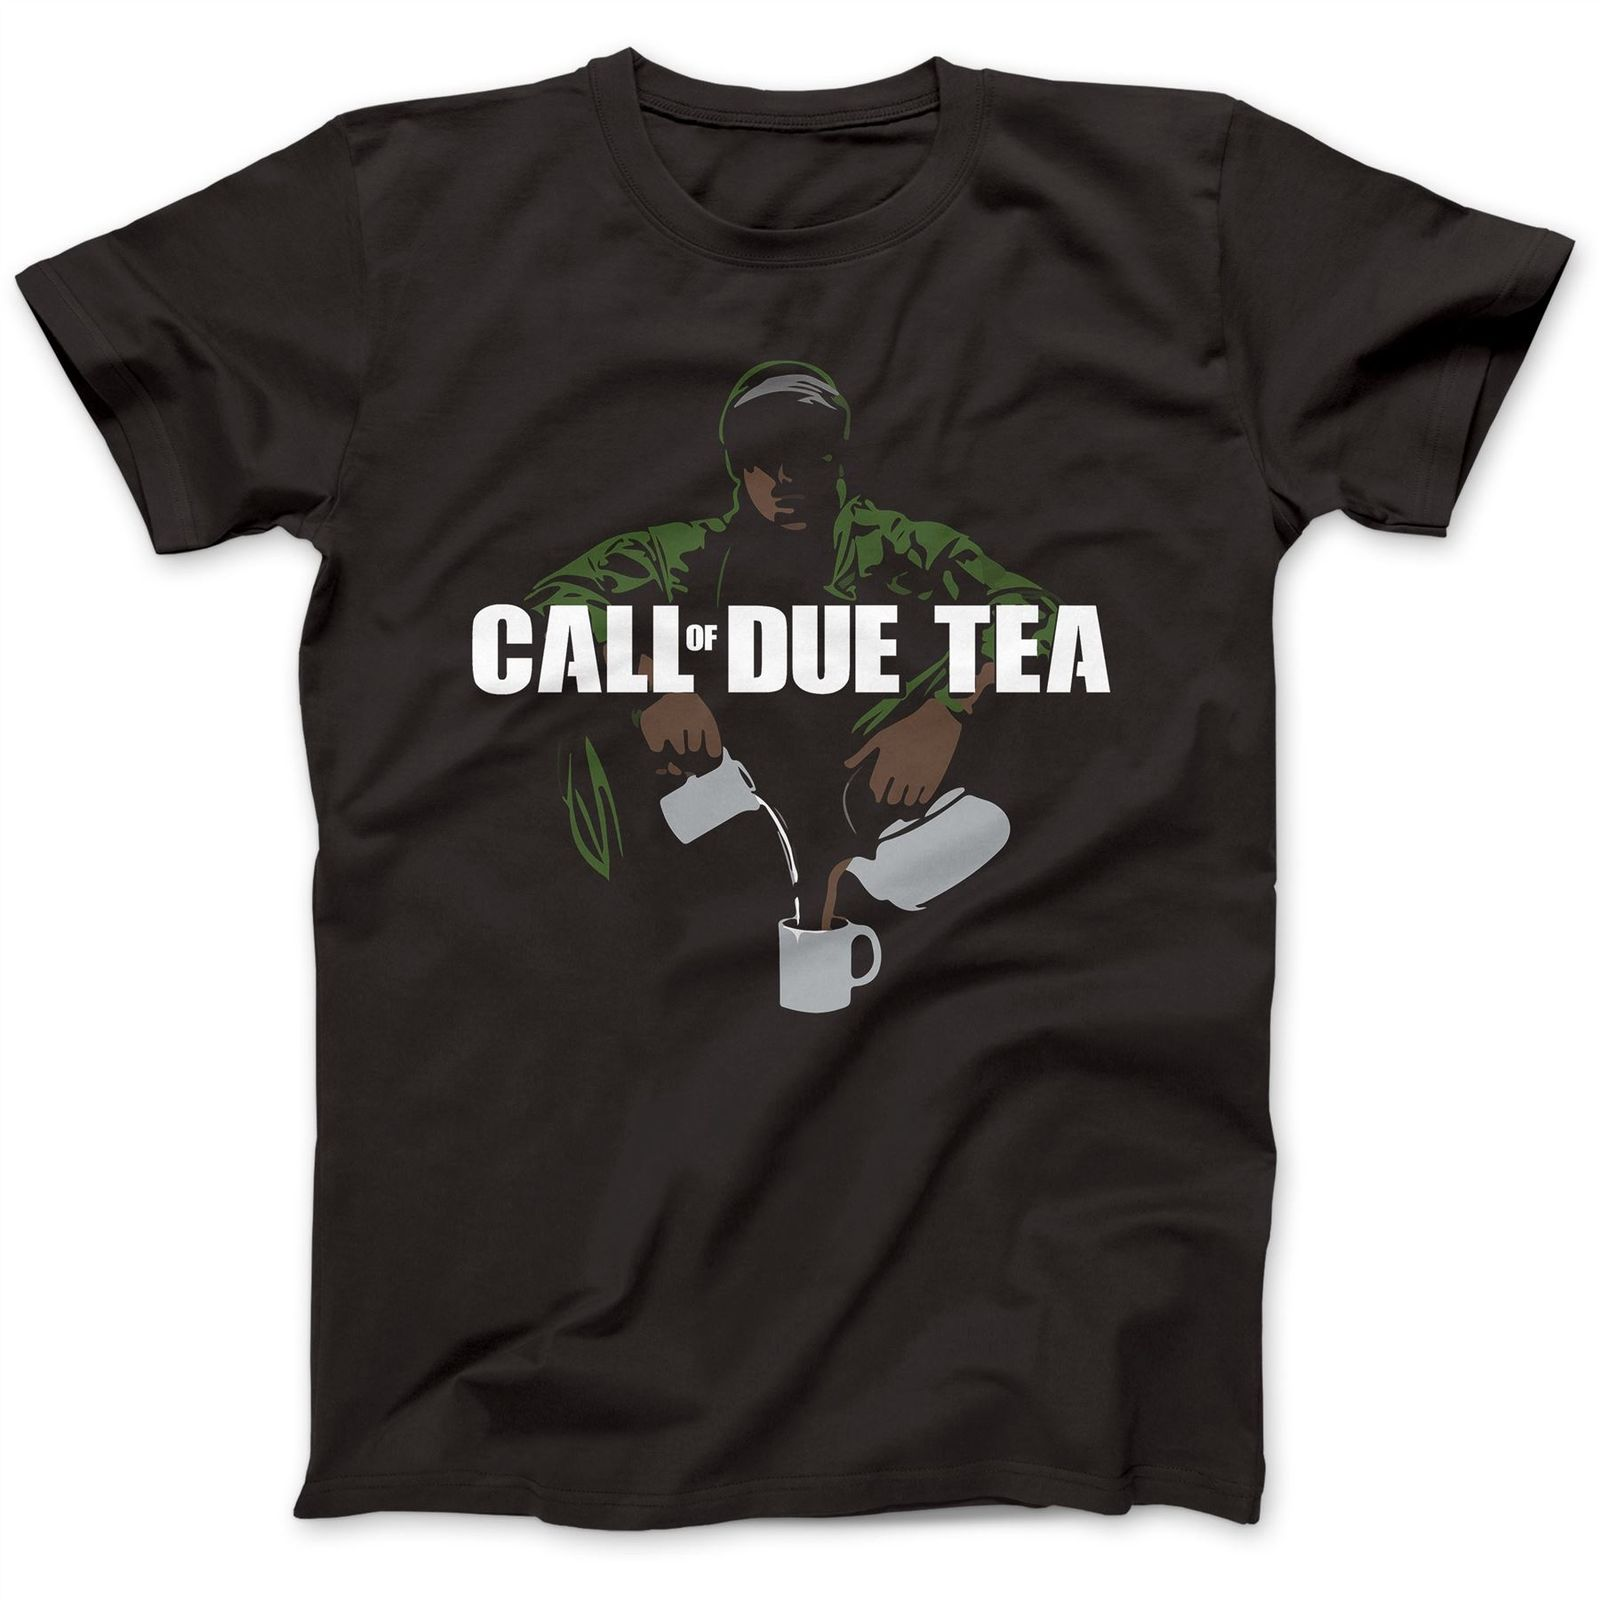 Call Of Due Tea Parody T-Shirt 100% Premium Cotton Advanced Warfare Duty Chinese Style